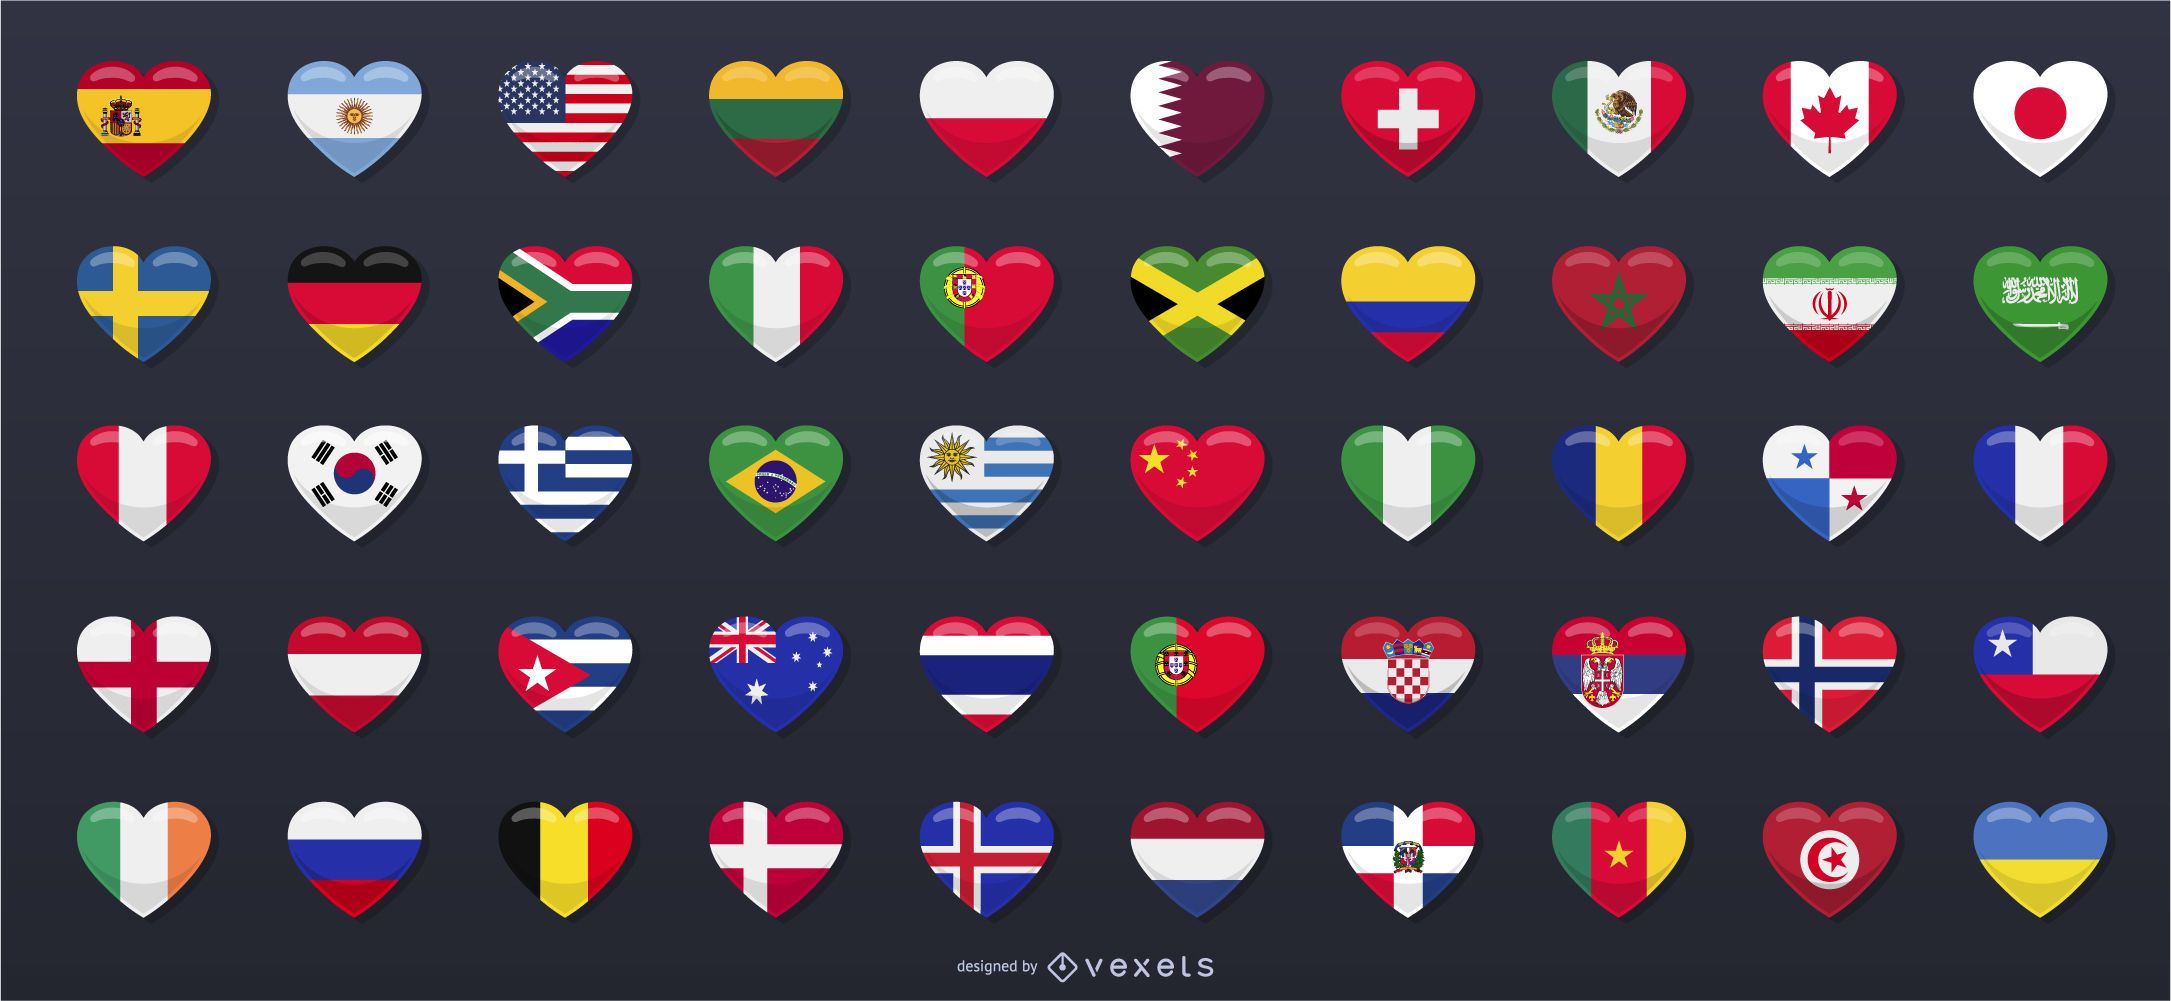 50 heart-shaped country flags